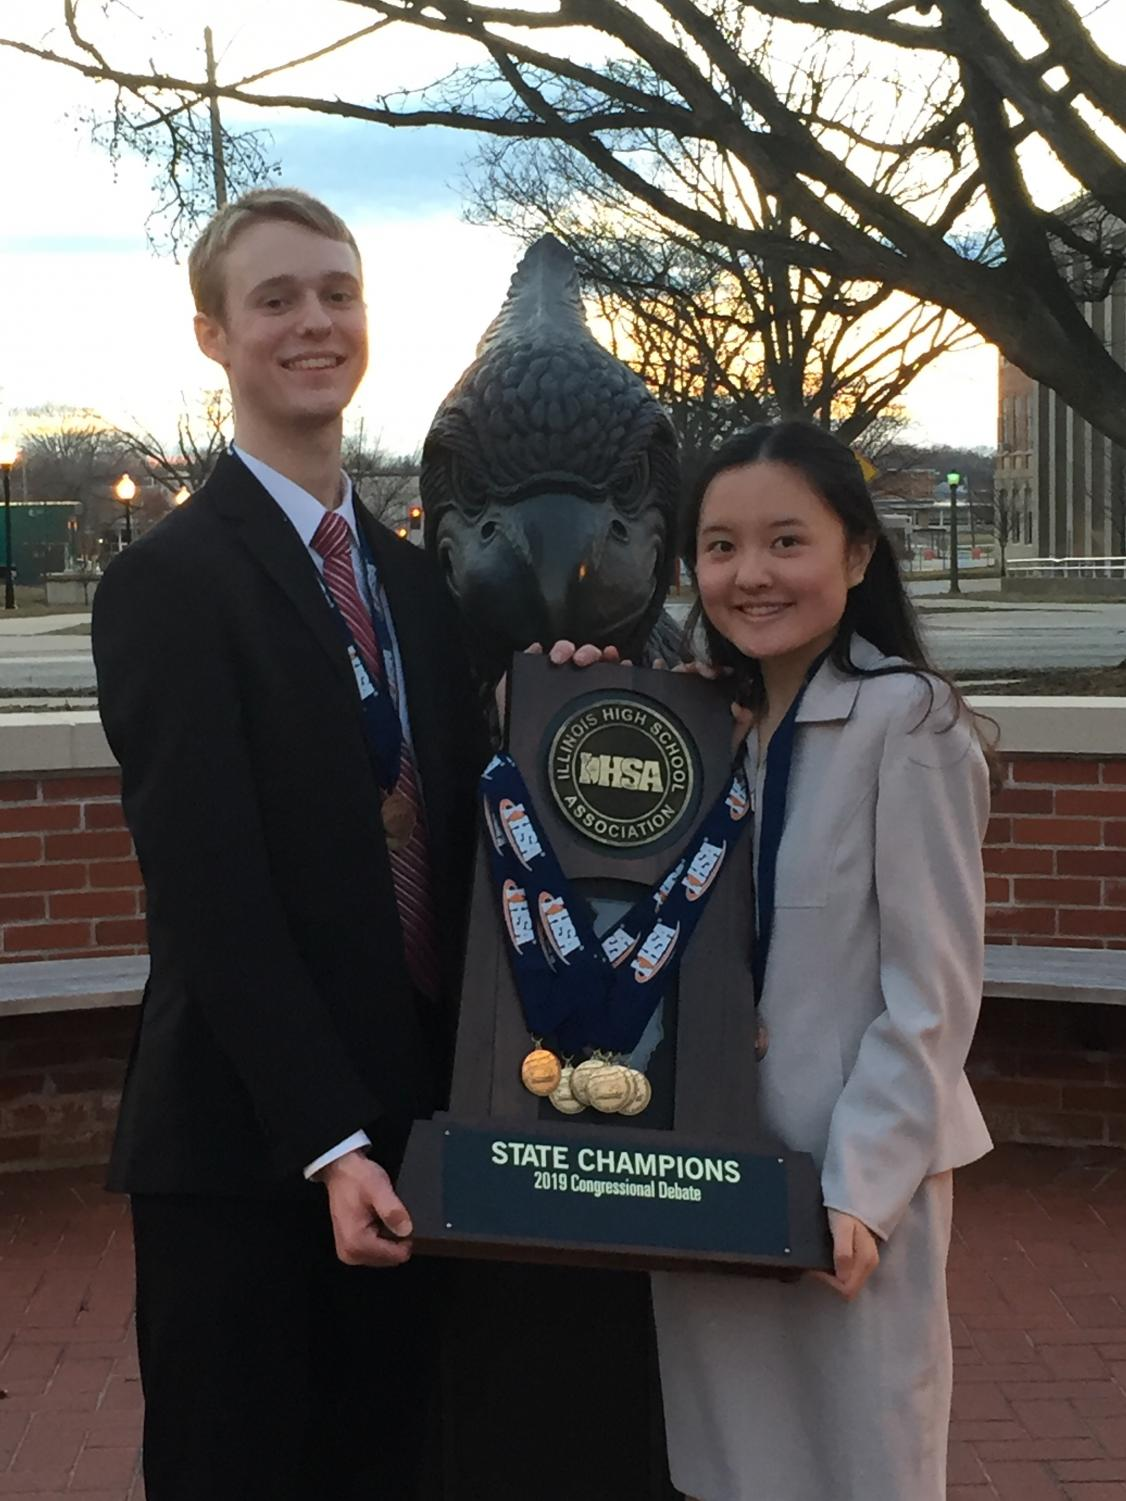 Senior Jim Royal and junior Vivian Zhao win the IHSA state champion team title in Congressional Debate. The tournament took place on March 15 and 16 at ISU.